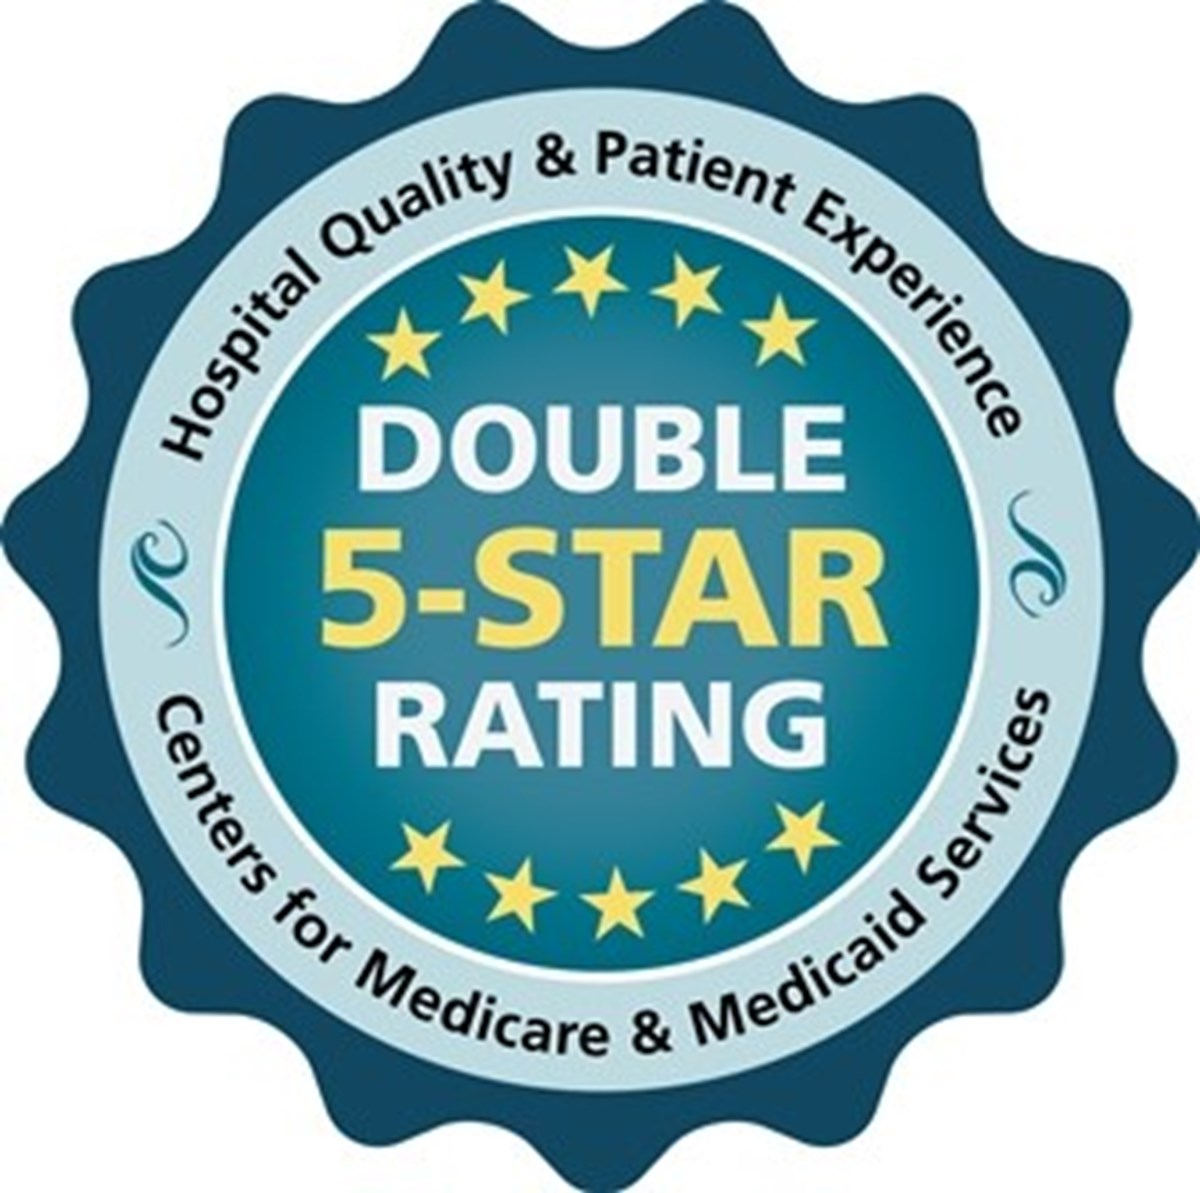 SCH rated among top in nation for Quality and Patient Experience